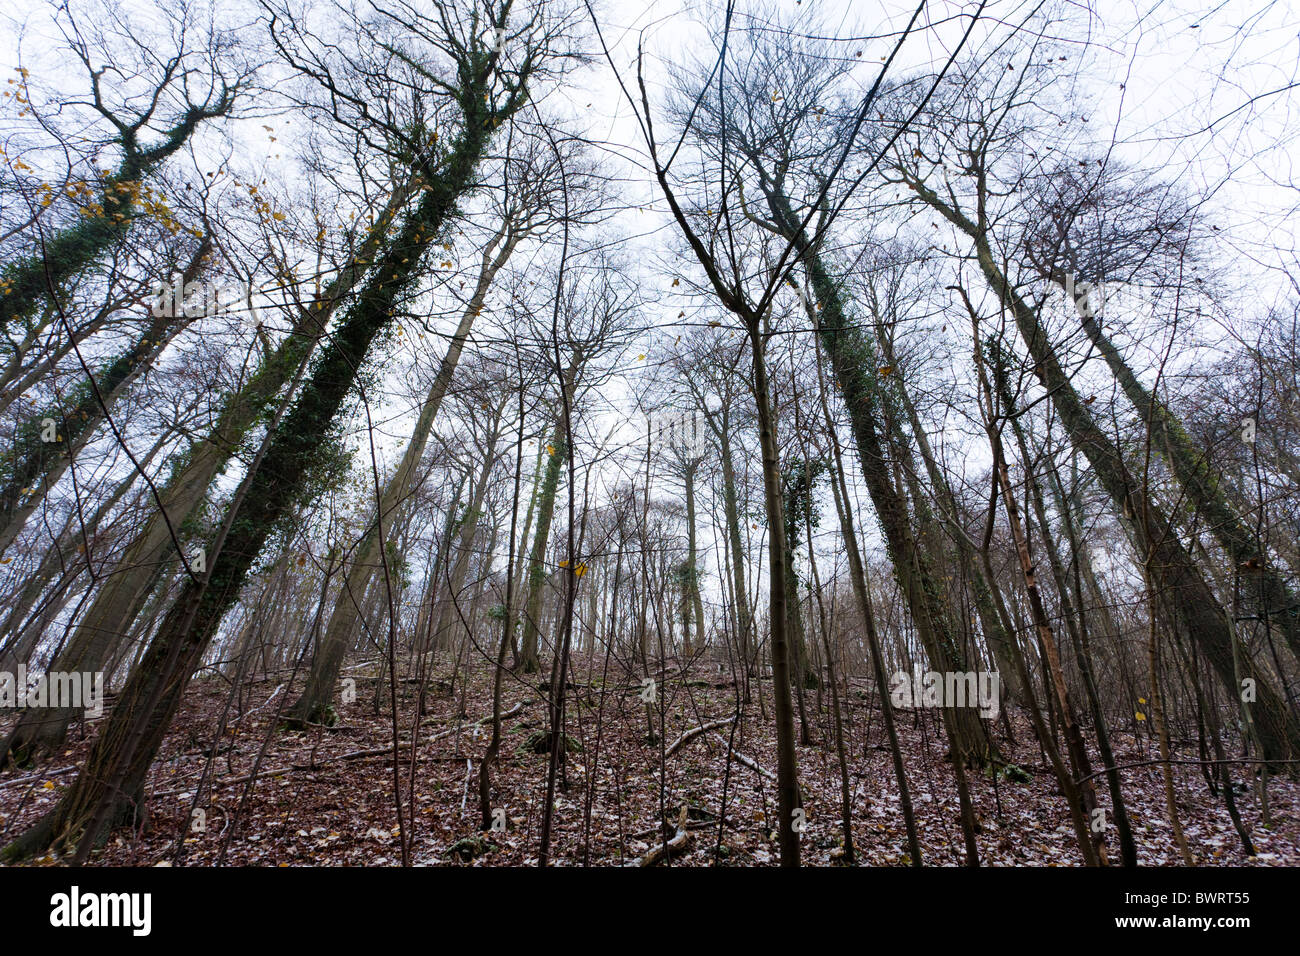 A Cotswold beechwood in winter, Popes Wood, near Cranham, Gloucestershire - Stock Image